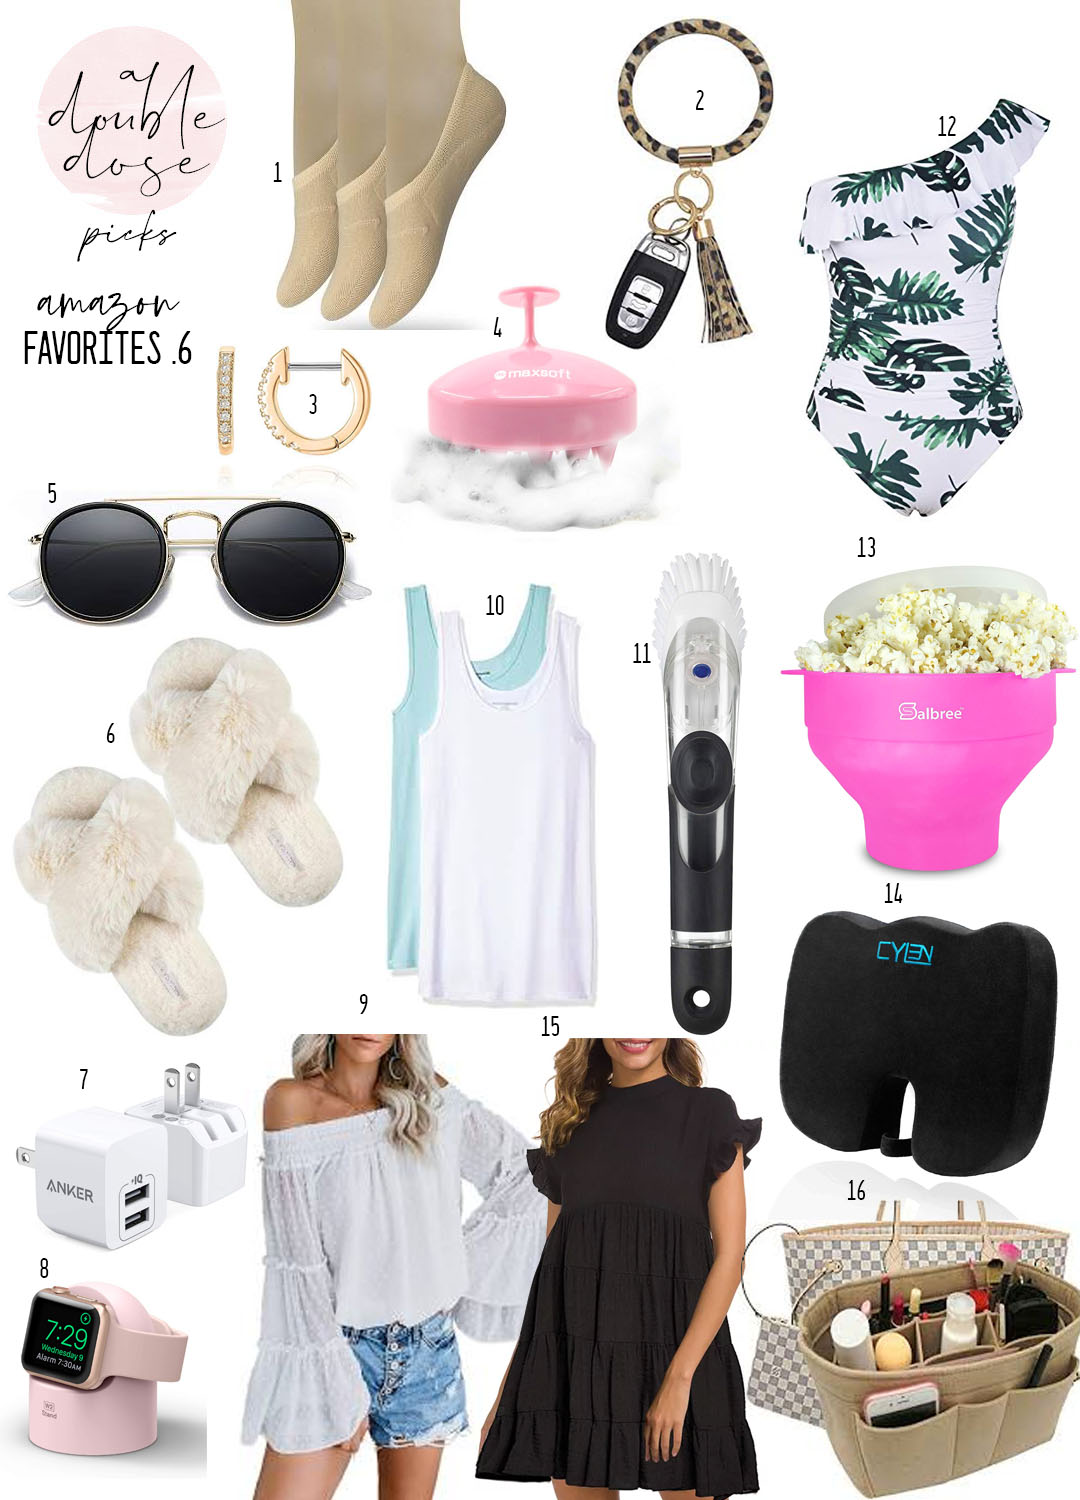 lifestyle and fashion blogger alexis belbel sharing amazon favorites like cozy slippers, dupe sunglasses, no show socks, palm print swimsuit, USB outlets and more | adoubledose.com